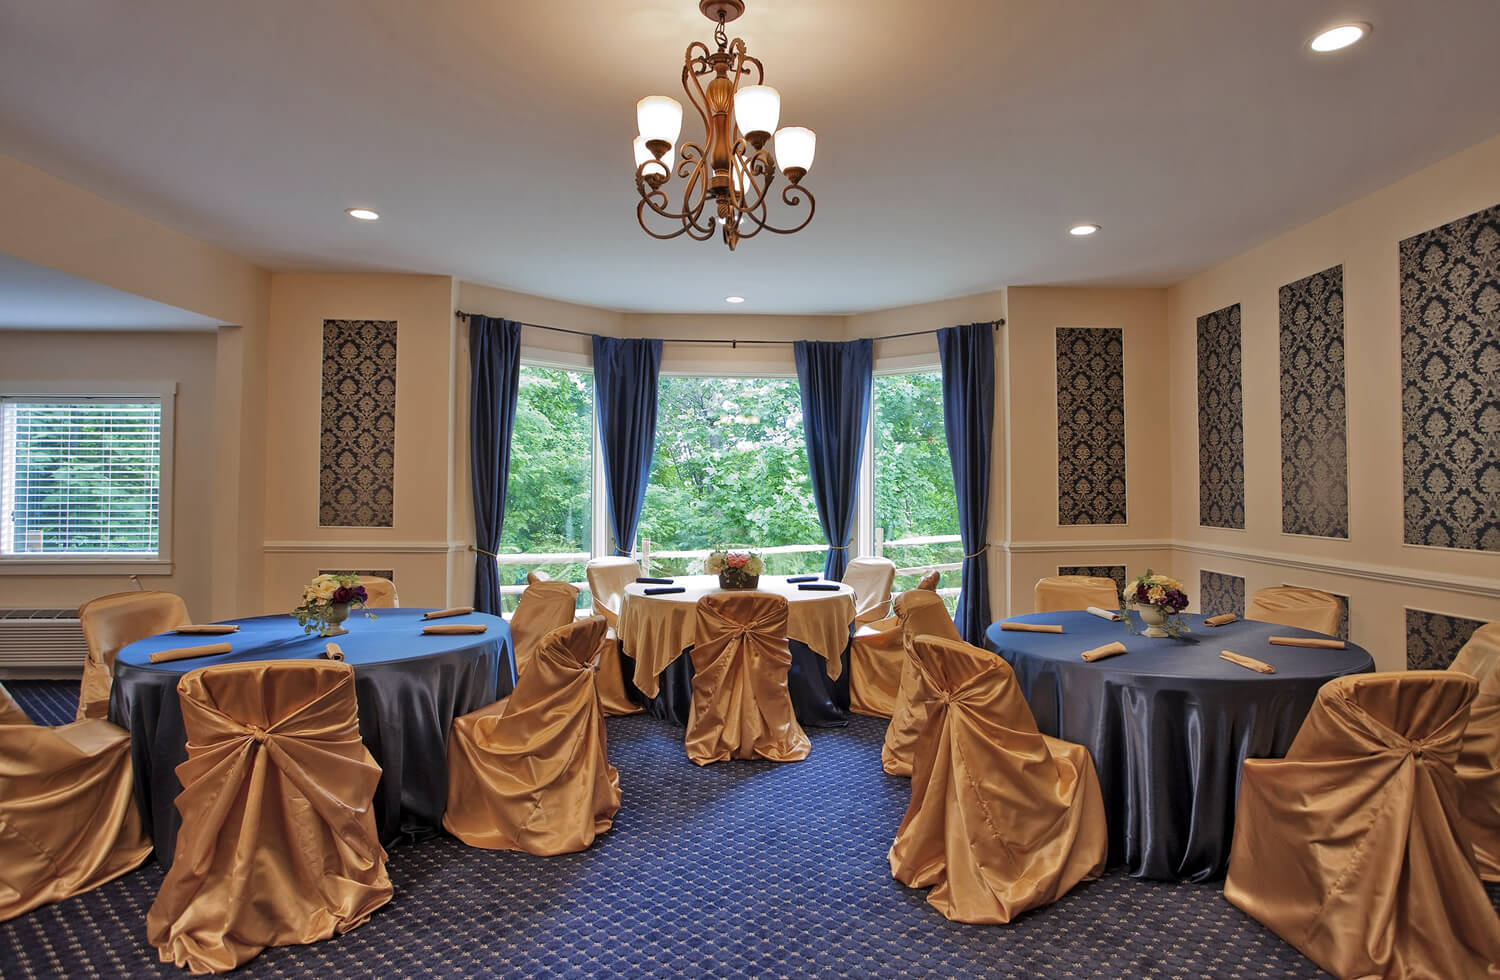 light shines through the windows in the event space, a chandelier hangs above round tables decorated in blue and gold